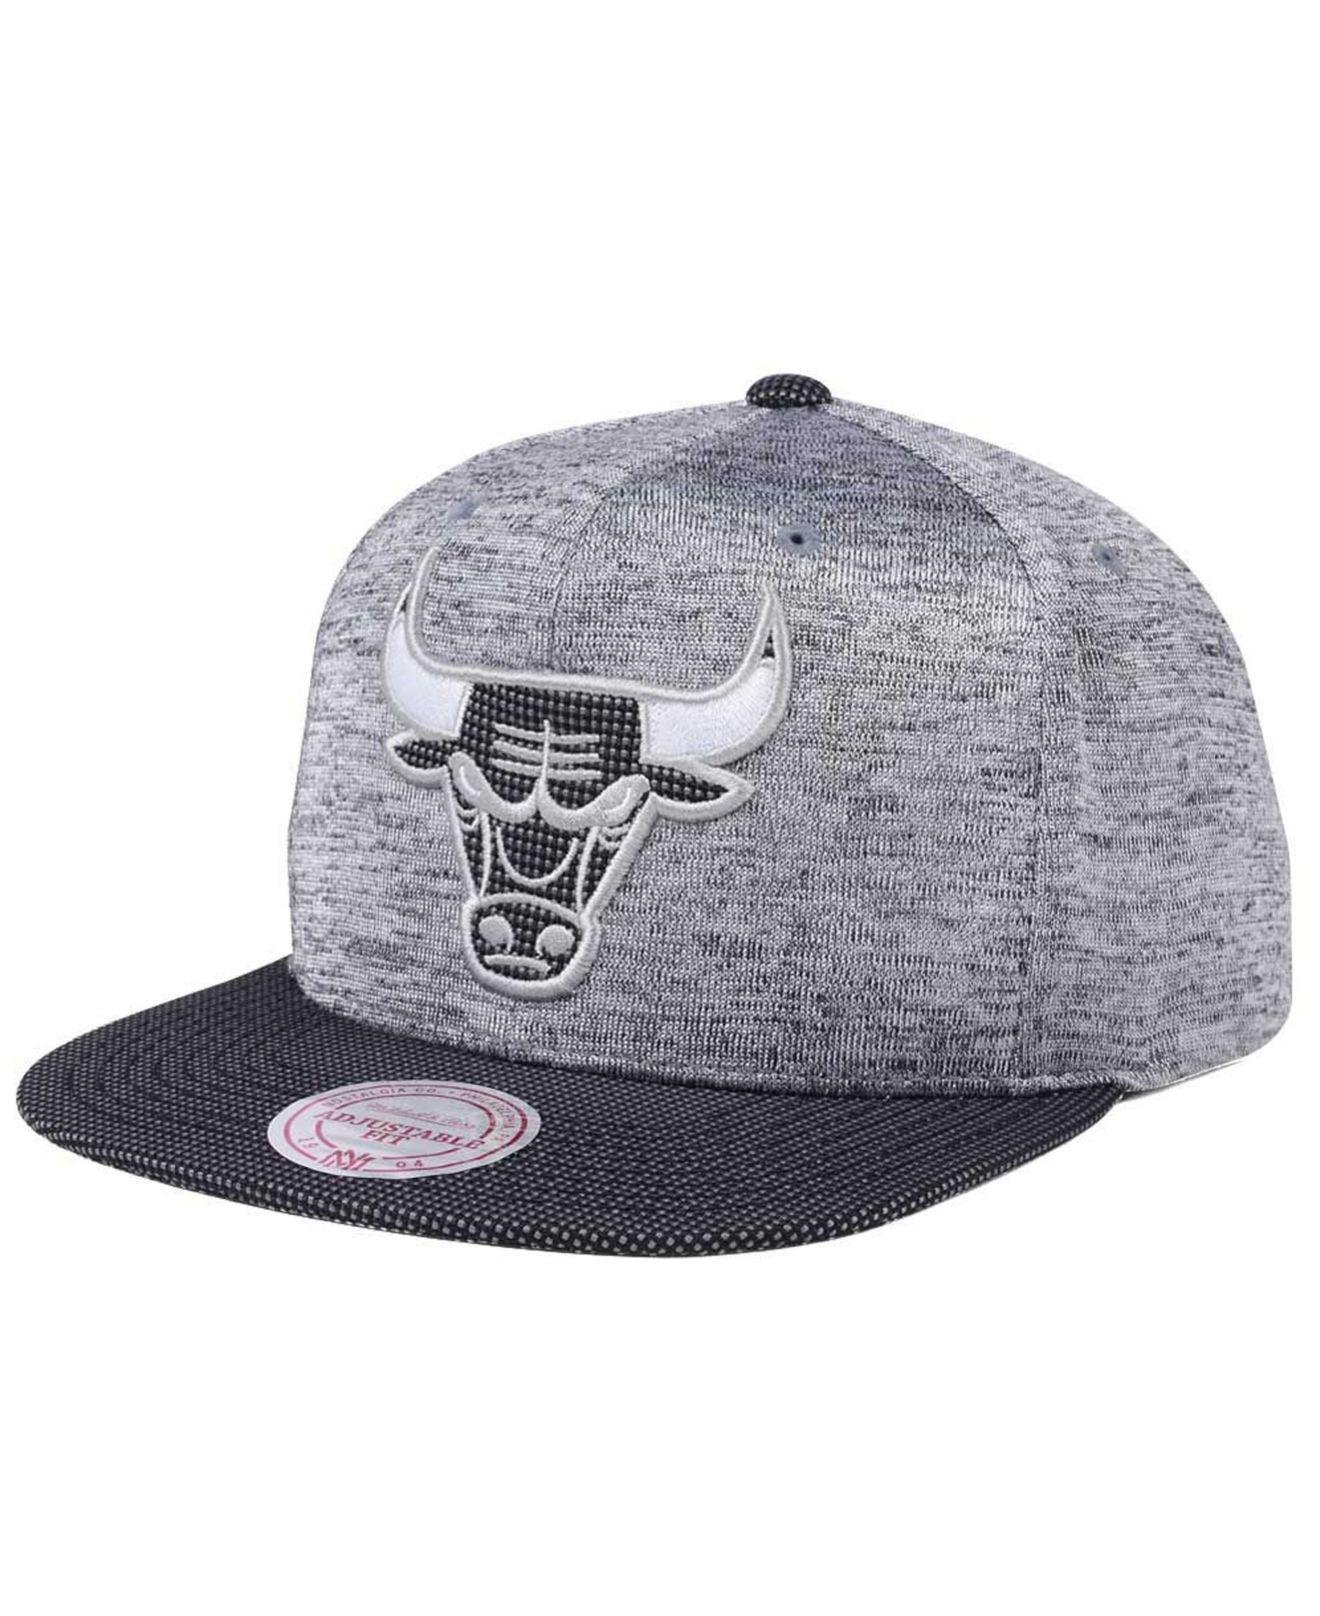 official photos 56a97 42712 Mitchell   Ness. Women s Gray Space Knit Snapback Cap